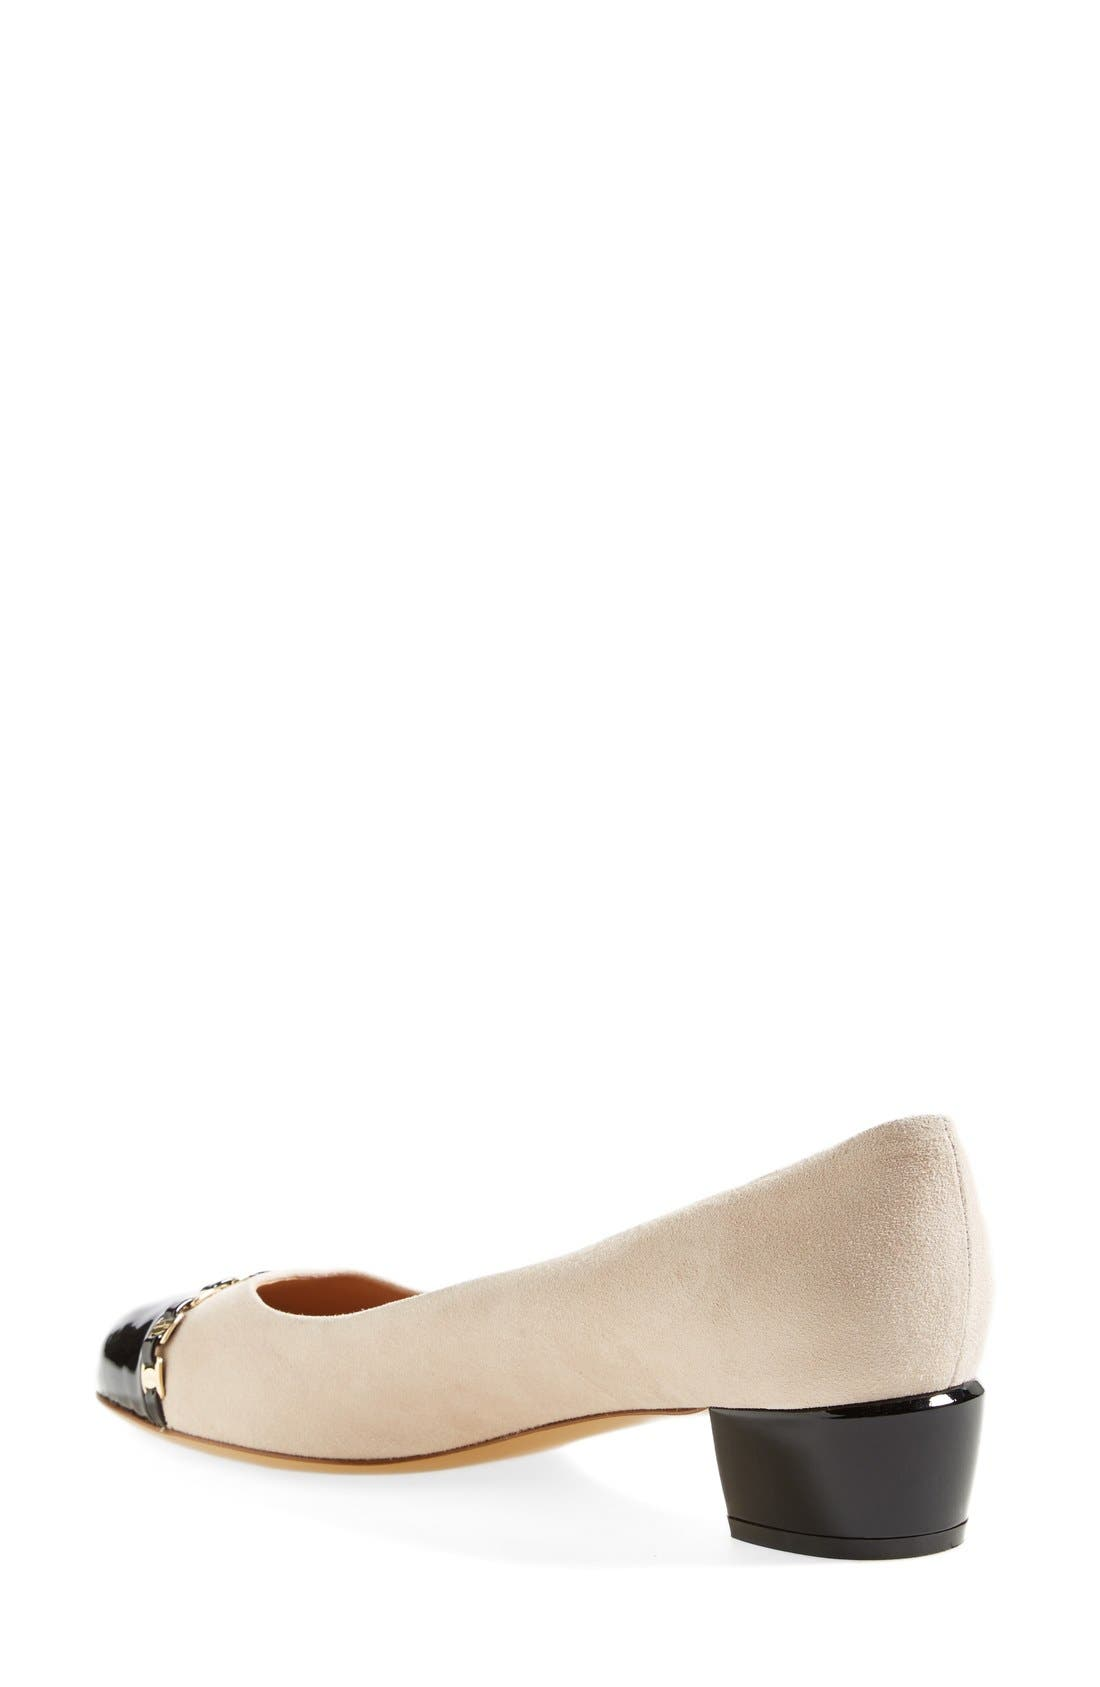 Alternate Image 2  - Salvatore Ferragamo 'Pim' Pump